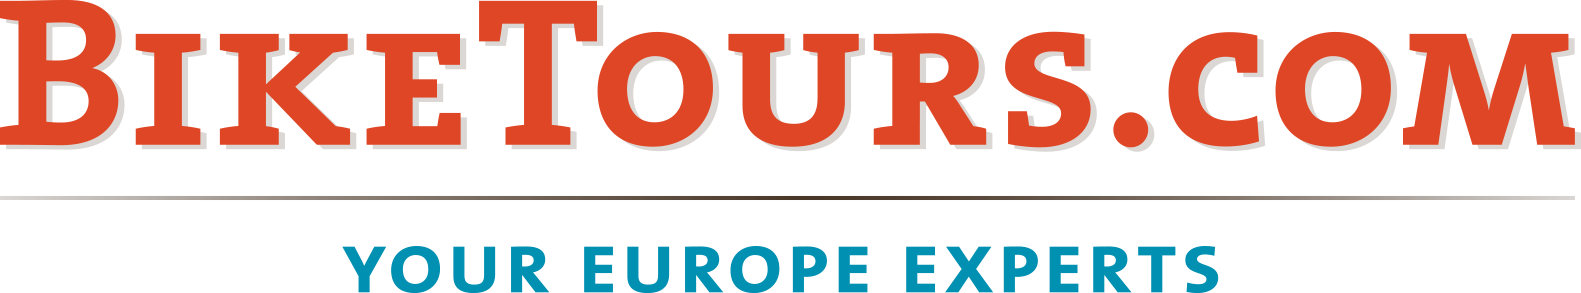 Bike_Tours_Logo.png